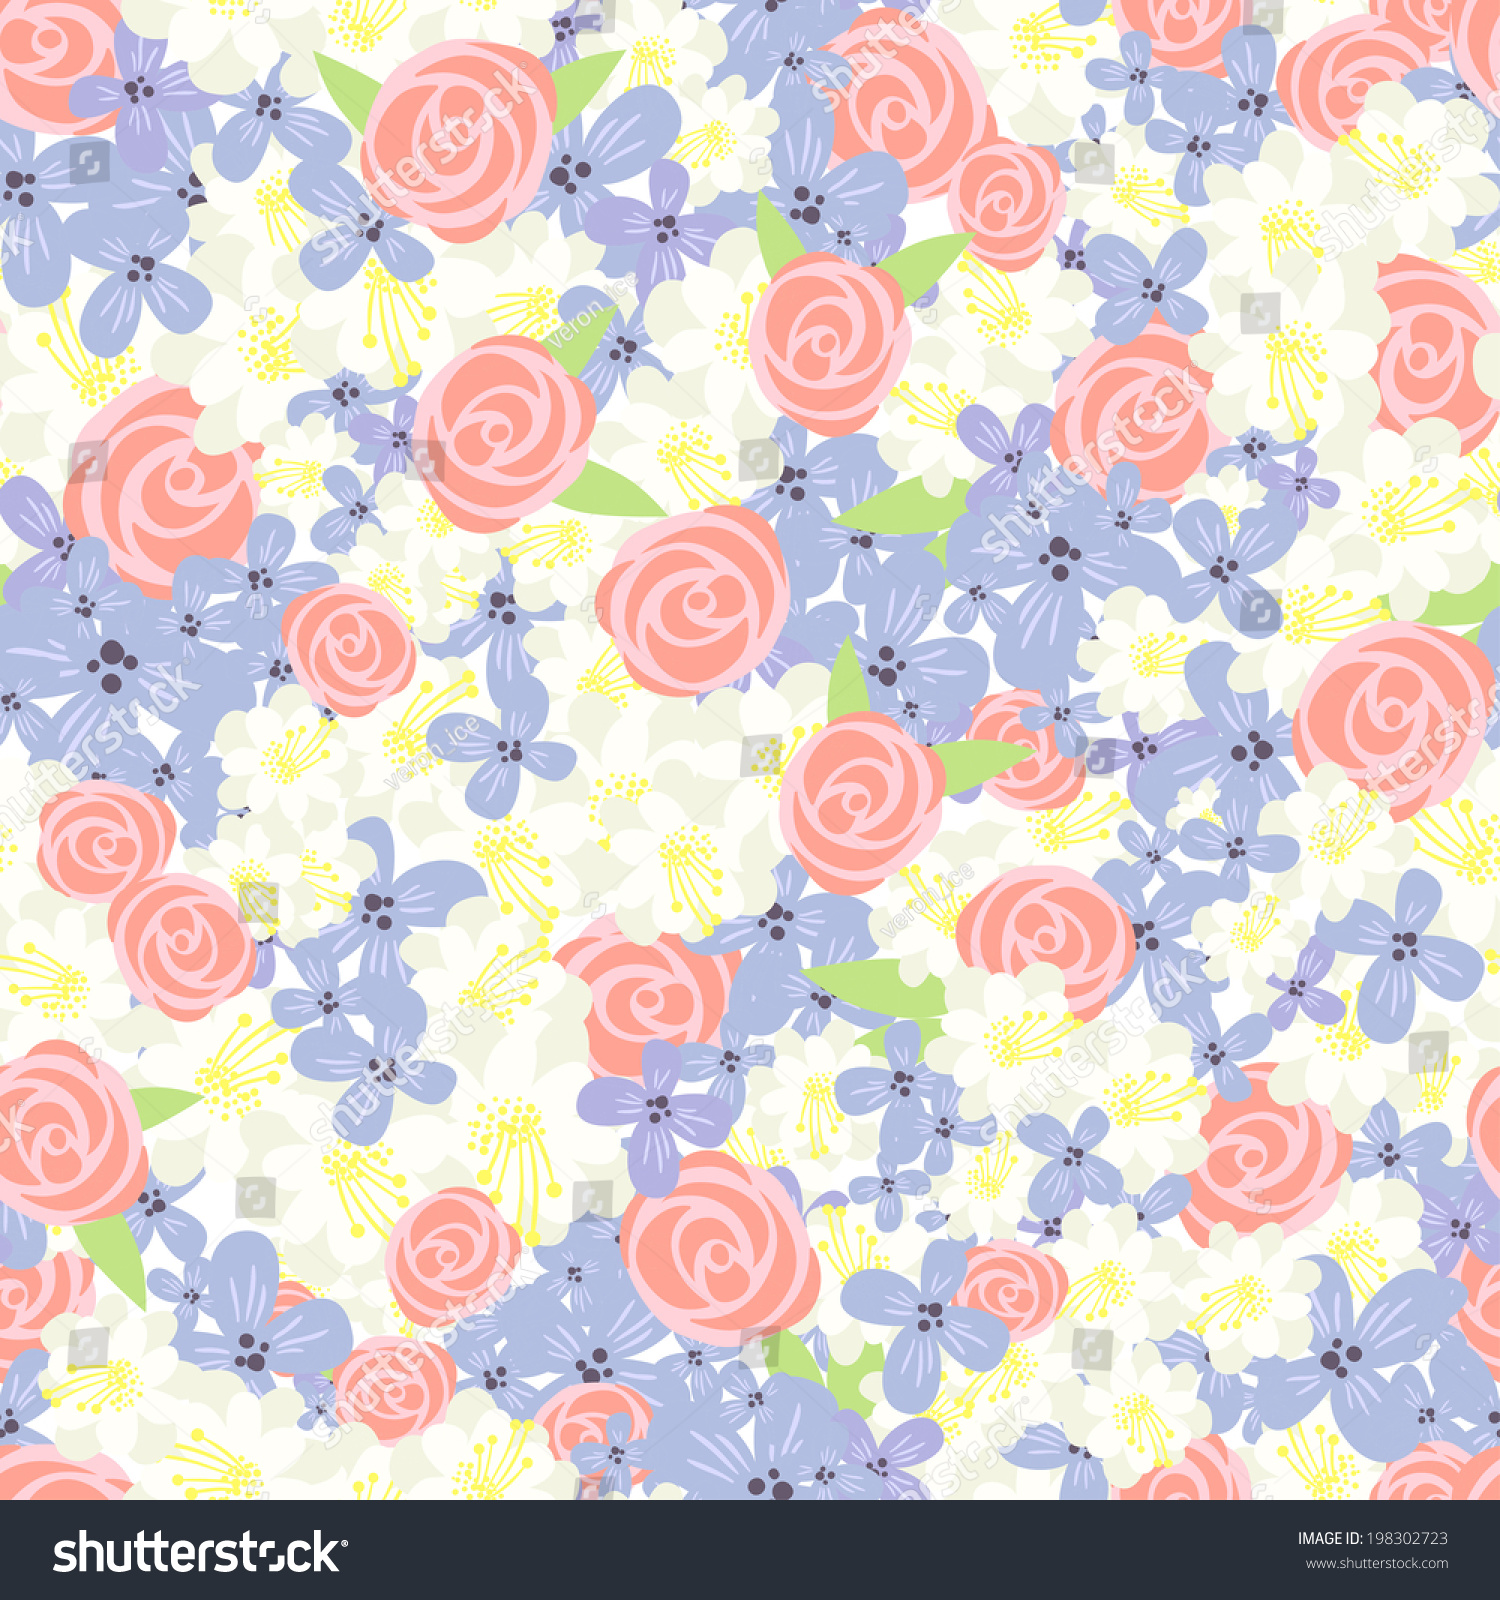 Stylish Vintage Floral Background Seamless Pattern Stock Vector